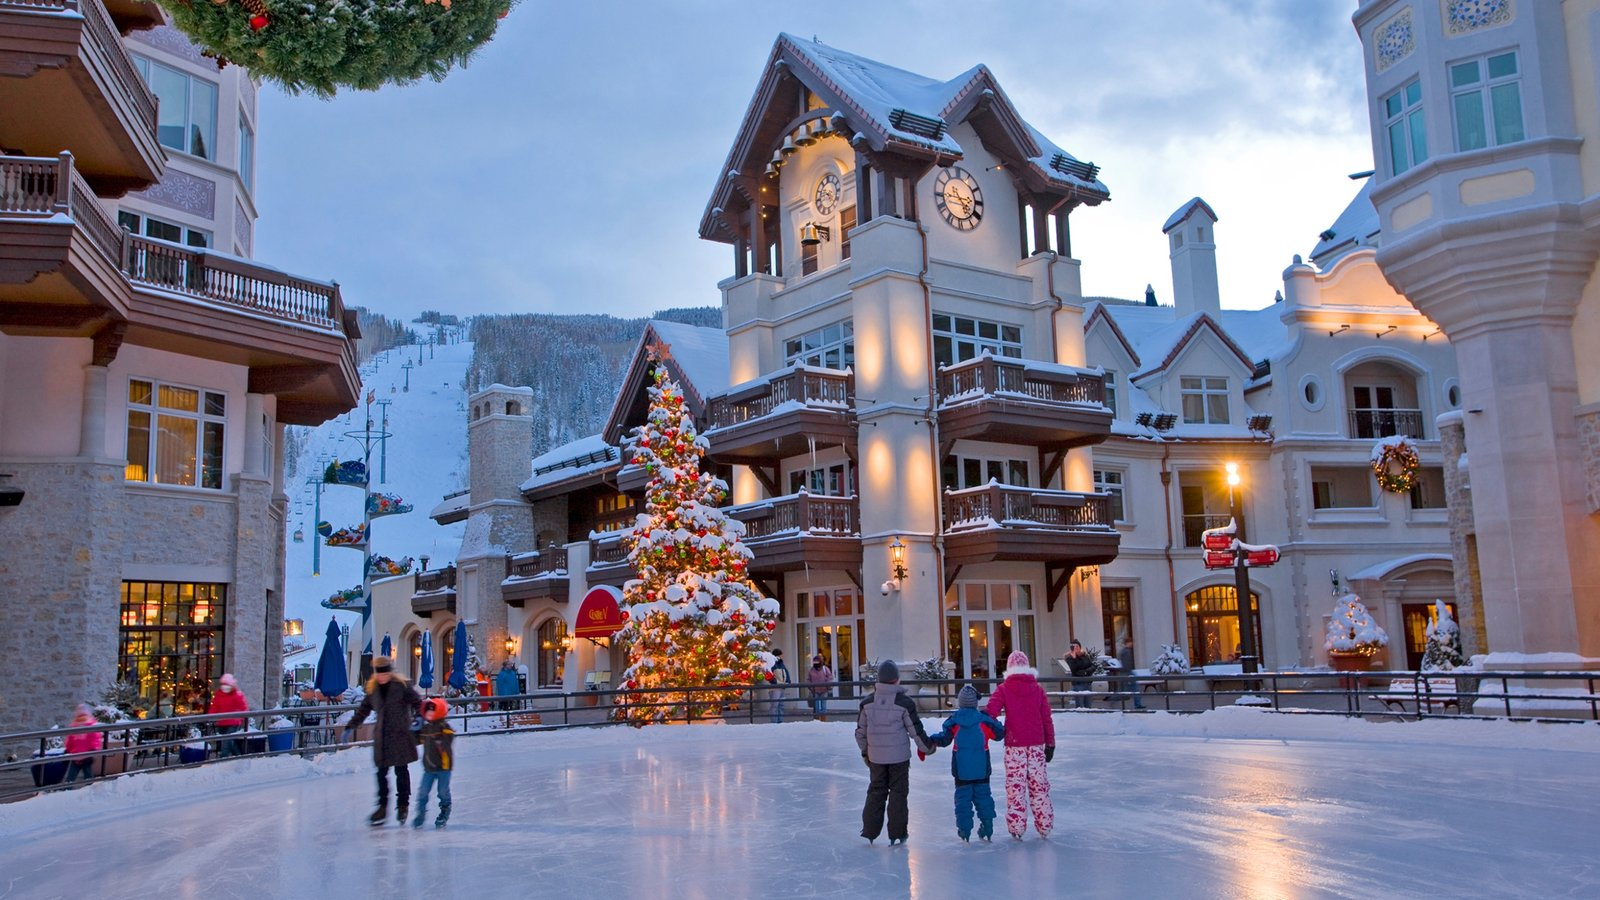 Vail showing snow a luxury hotel or resort and ice skating